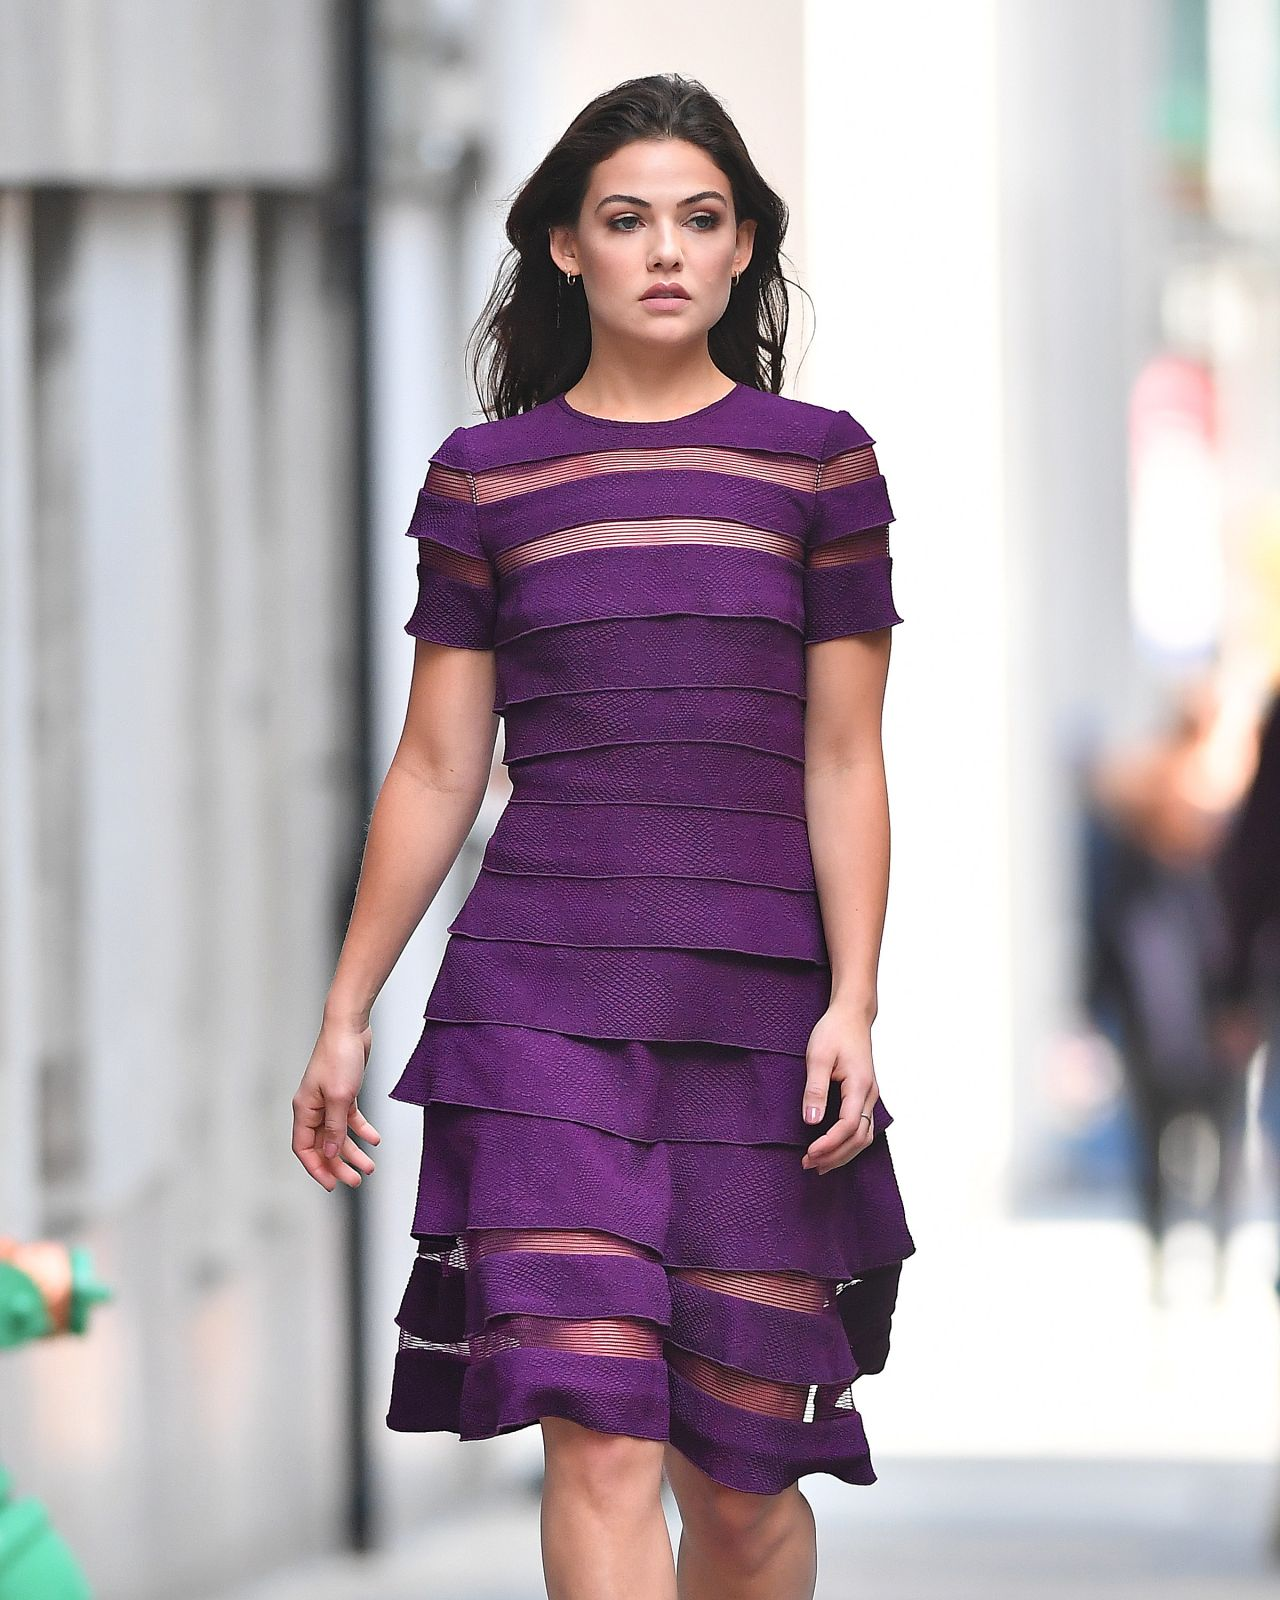 Danielle Campbell In A Purple Dress New York City 09 07 2017